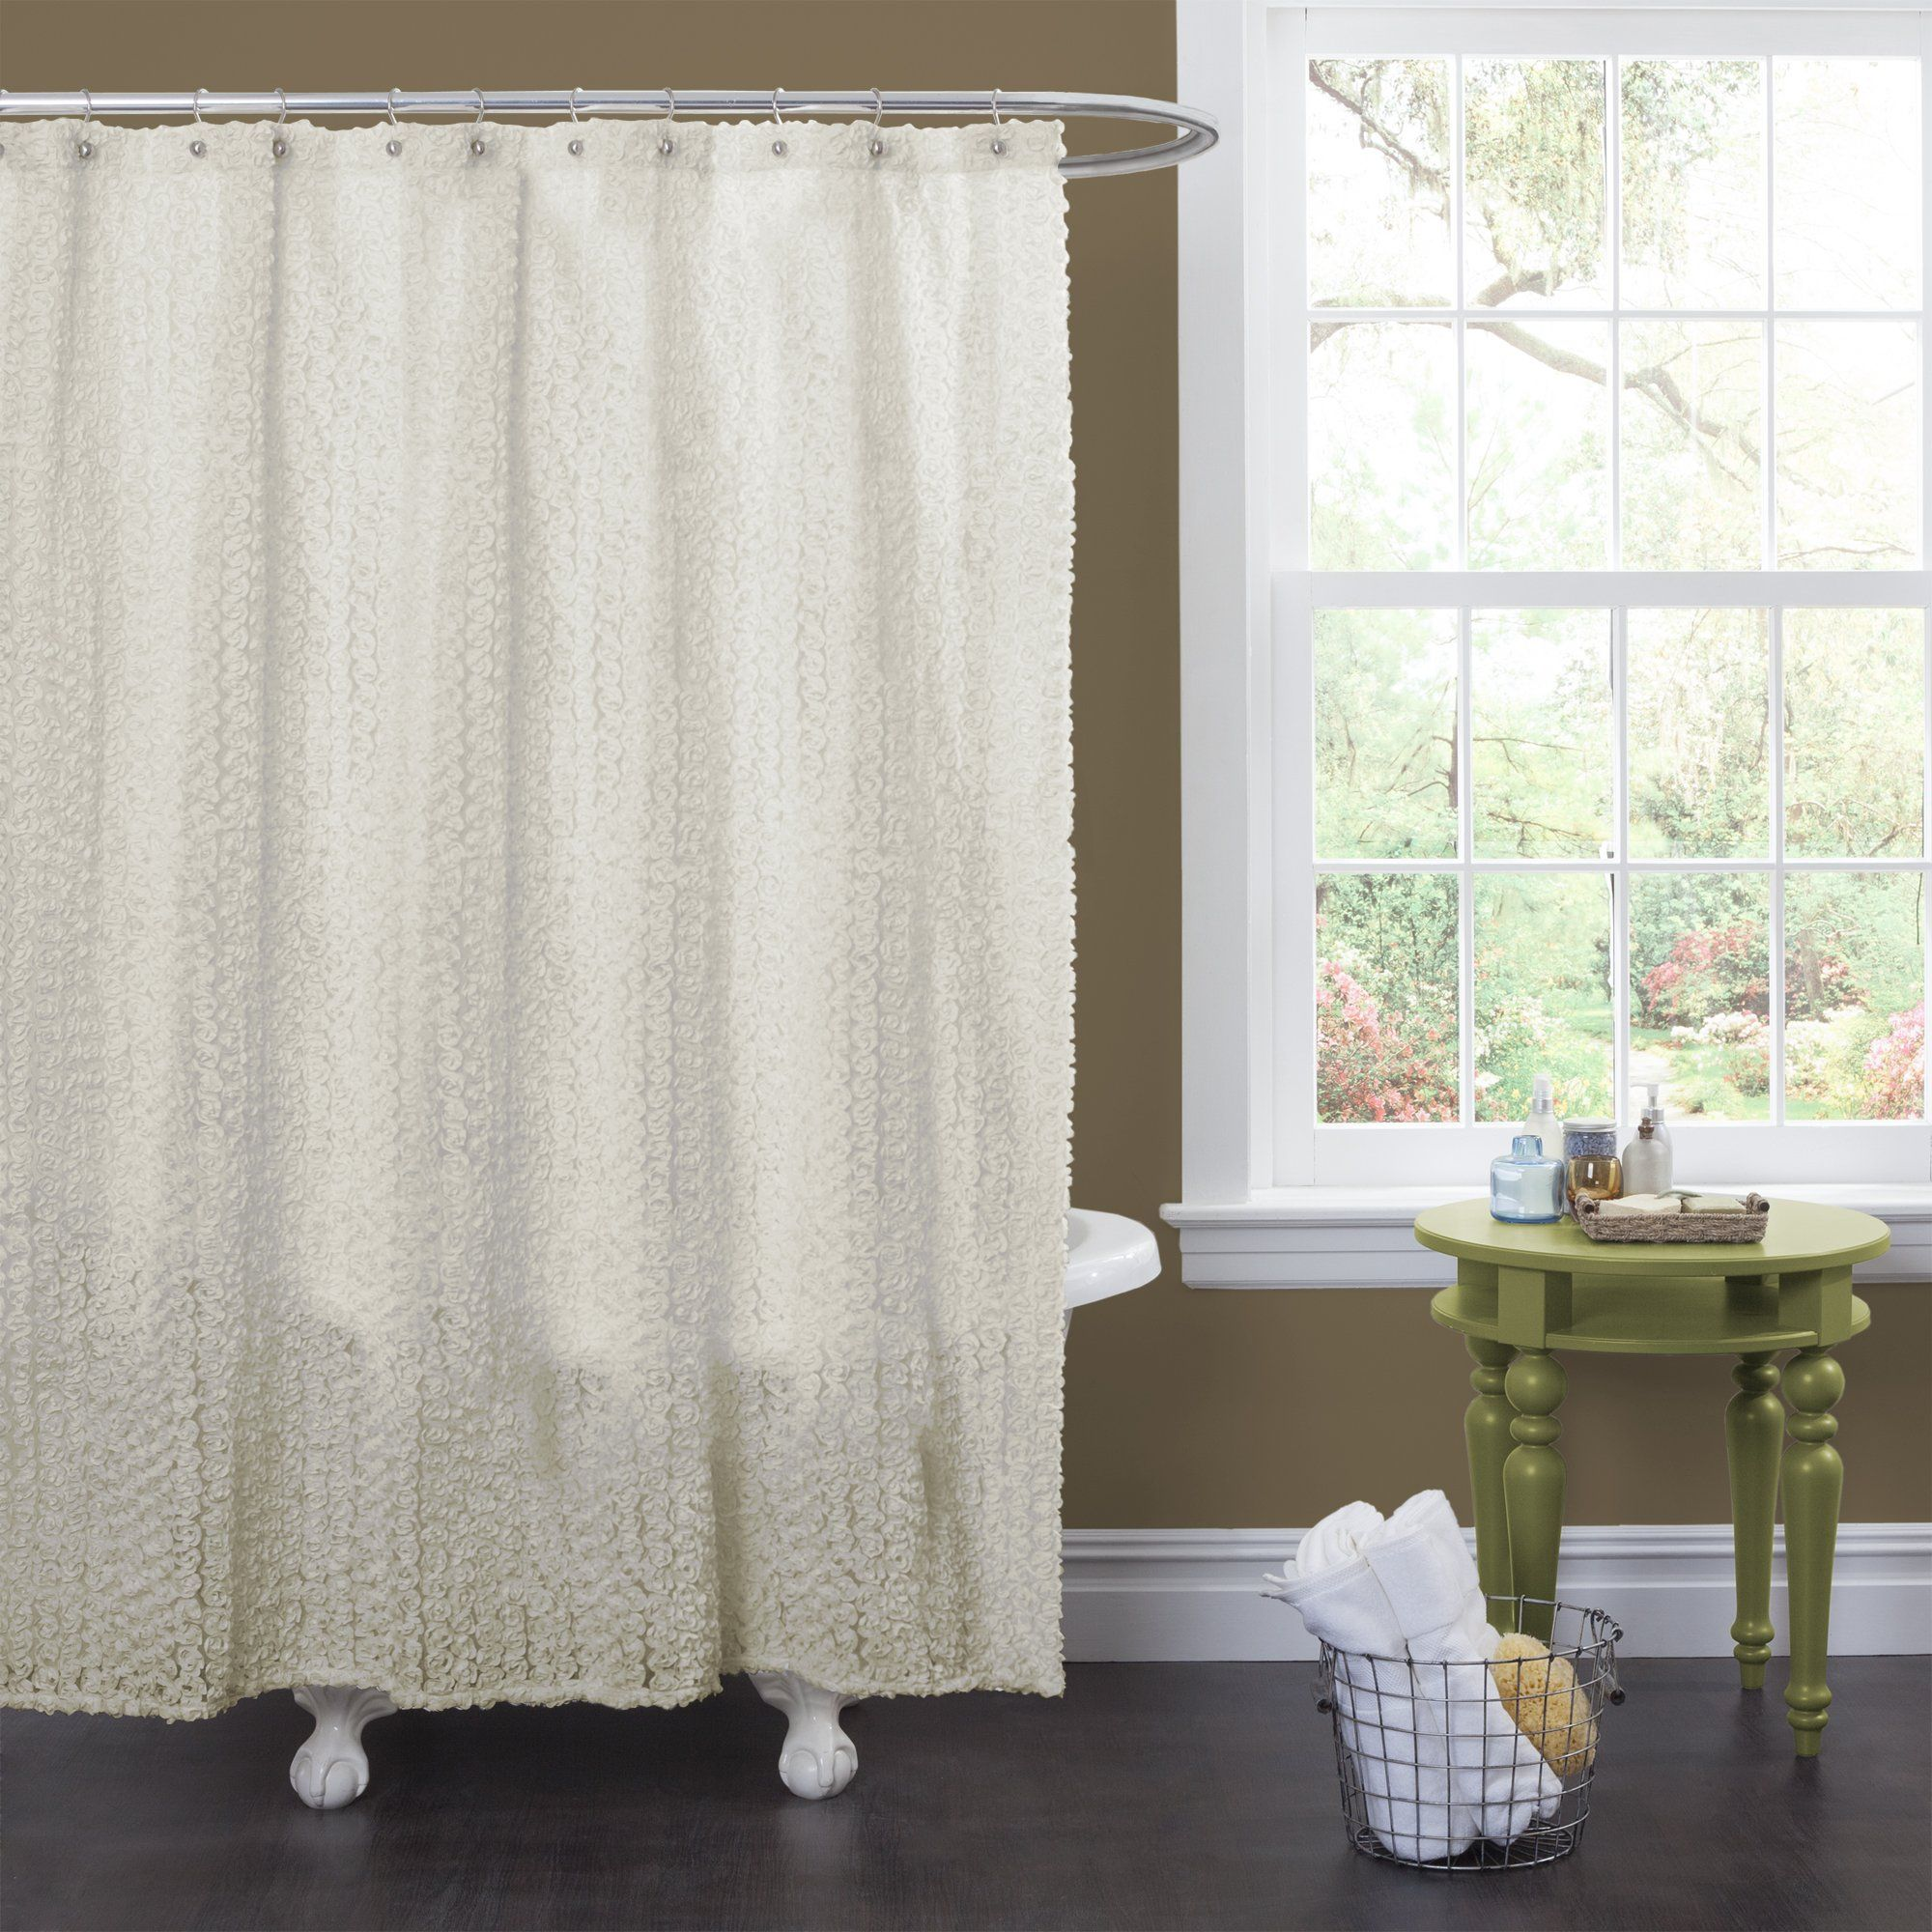 Lush Decor Roslyn Shower Curtain Ivory You Can Find Out More